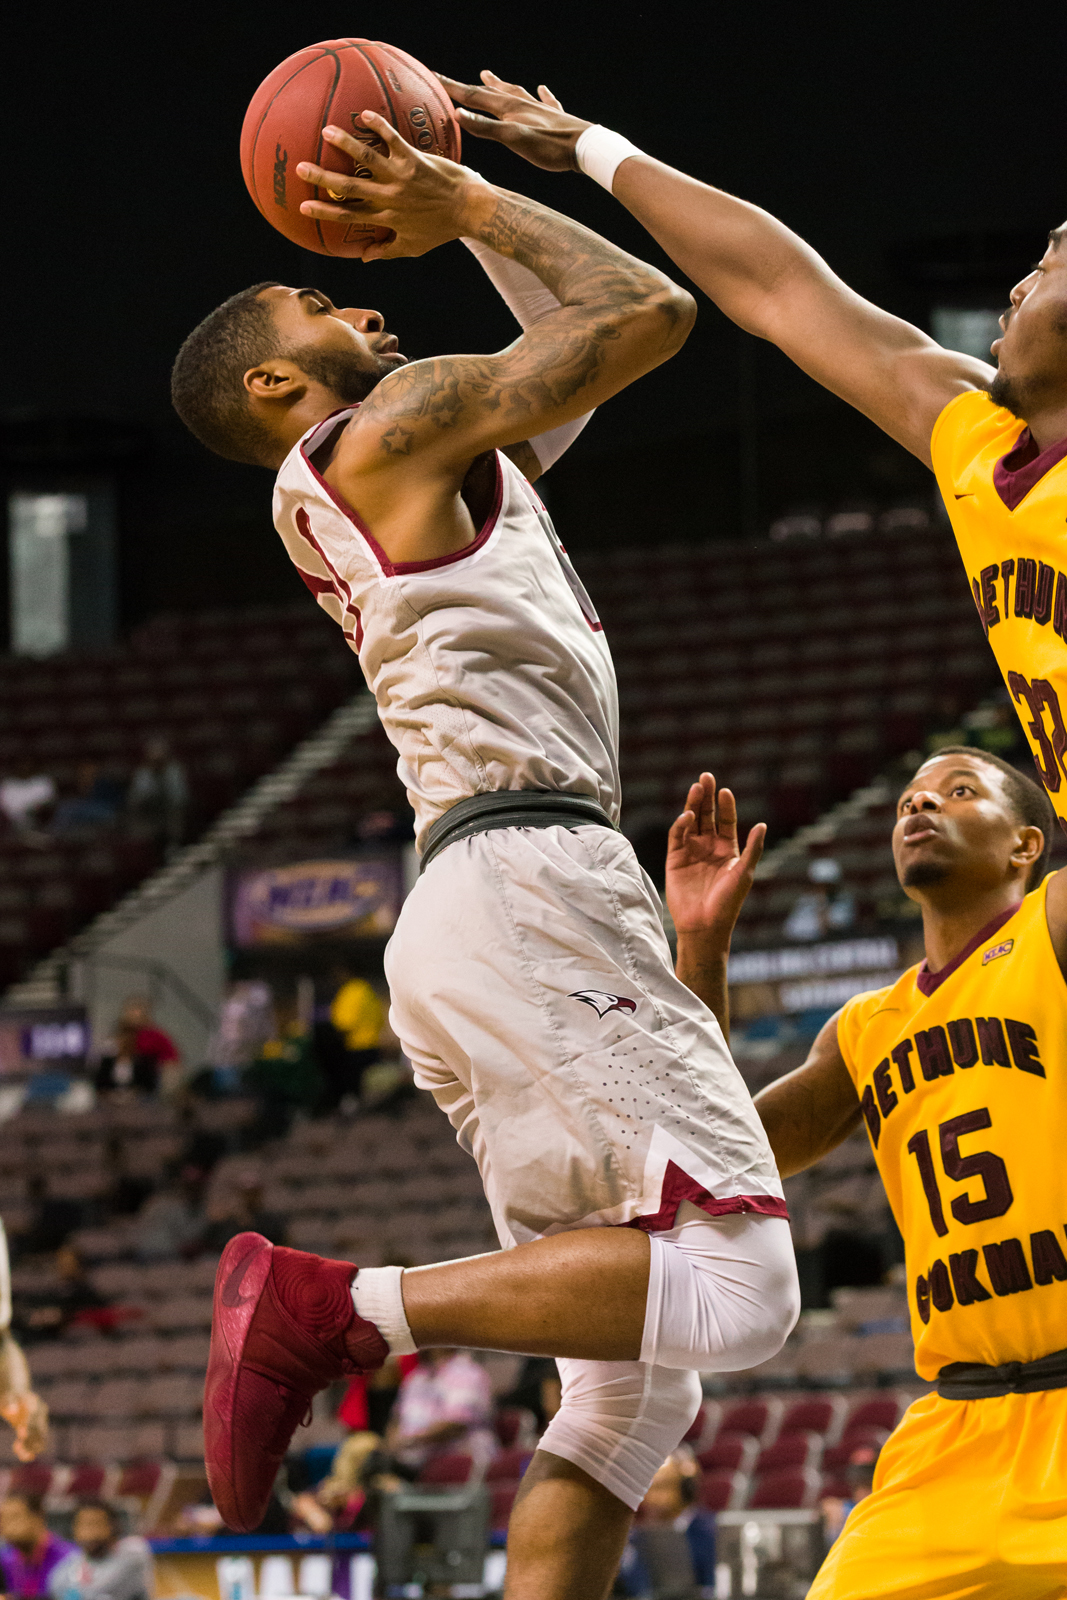 North Carolina Central Eagles guard Dajuan Graf (10) goes up for a shot against Bethune-Cookman Wildcats forward Ulmer Manzie (32) and guard Reggie Baker (15) during the 2017 MEAC Tournament held at the Scope Arena in Norfolk, VA. North Carolina Central defeated Bethune-Cookman 95-60.